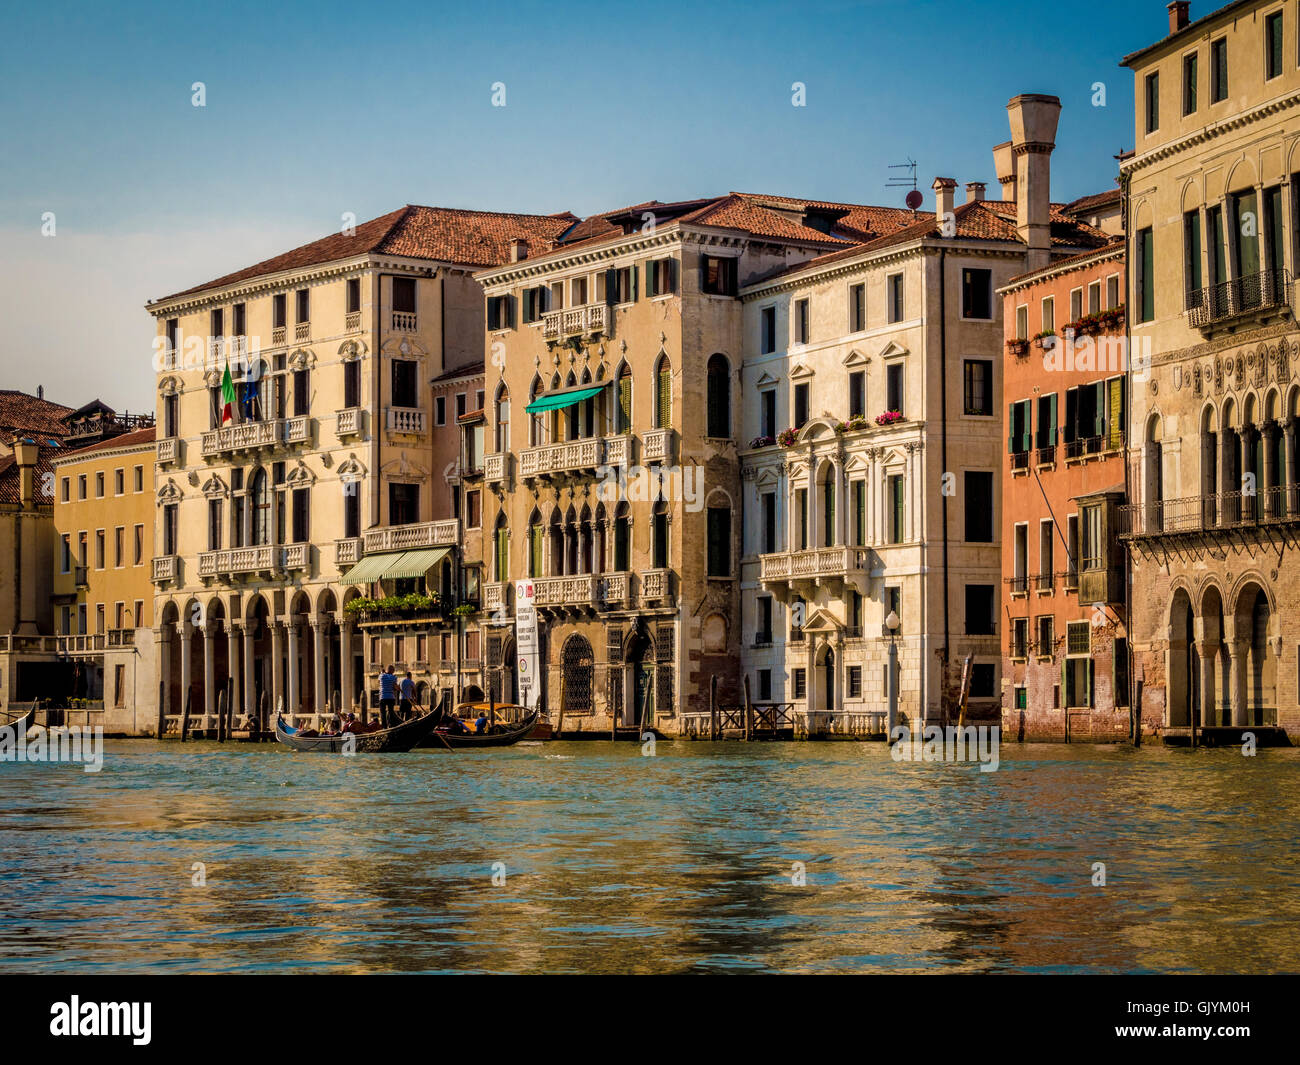 Traditional venetian buildings, including Palazzo Michiel dalle Colonne, along the Grand Canal, Venice. Italy. - Stock Image